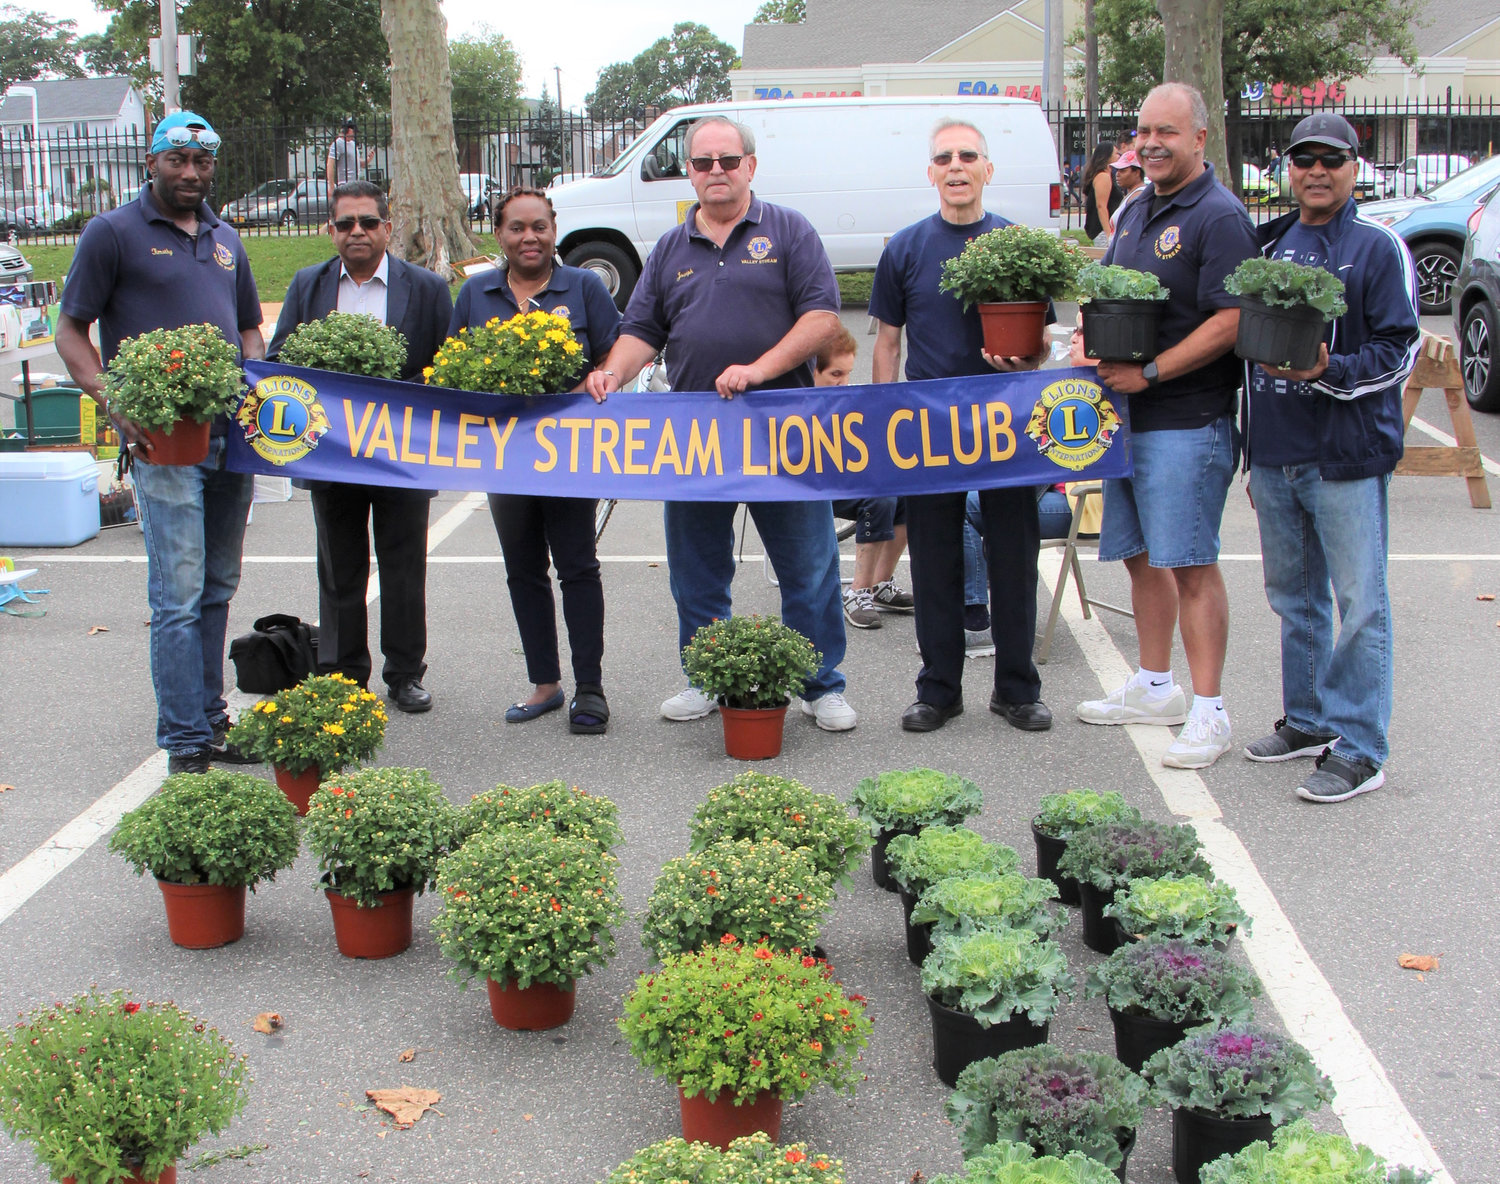 Valley Stream Lions Club members, Tim Linton, left, Tasneem Shahzad, Junon D.Zephyr, Bernard Chicarelli, Joe Scholl, Jose Pastran and Chanman Persaud. All funds raised from the event go to Lions International charities.